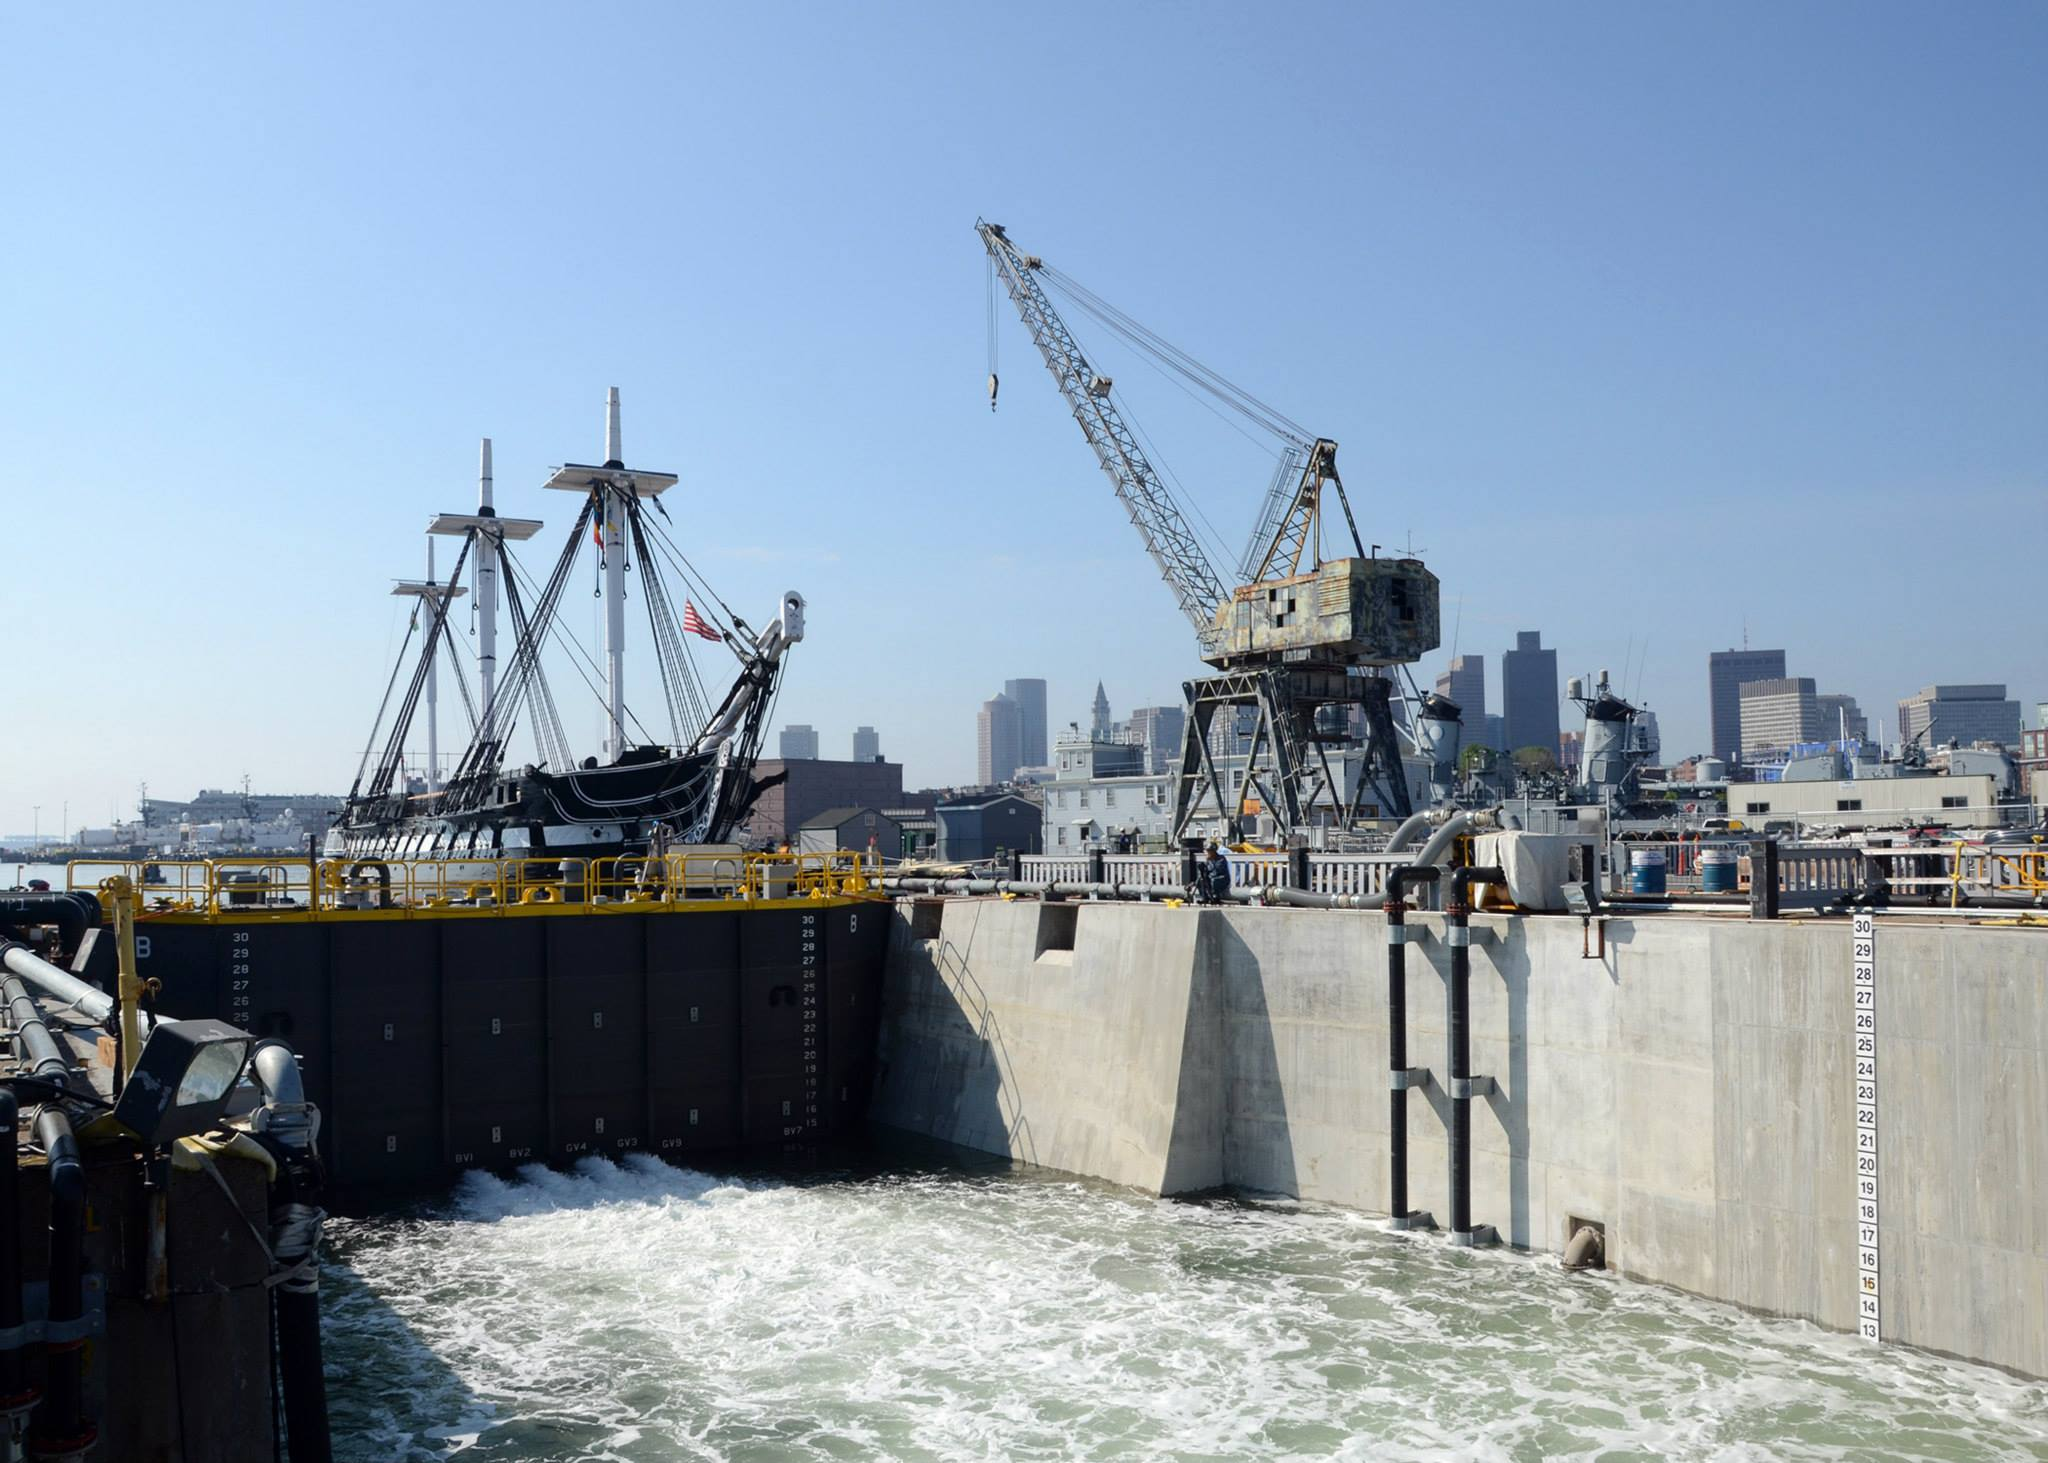 Dry Dock 1 is flooded on May 17, 2015. [Courtesy U.S. Navy. Photo by Mass Communication Specialist 2nd Class Peter Melkus]